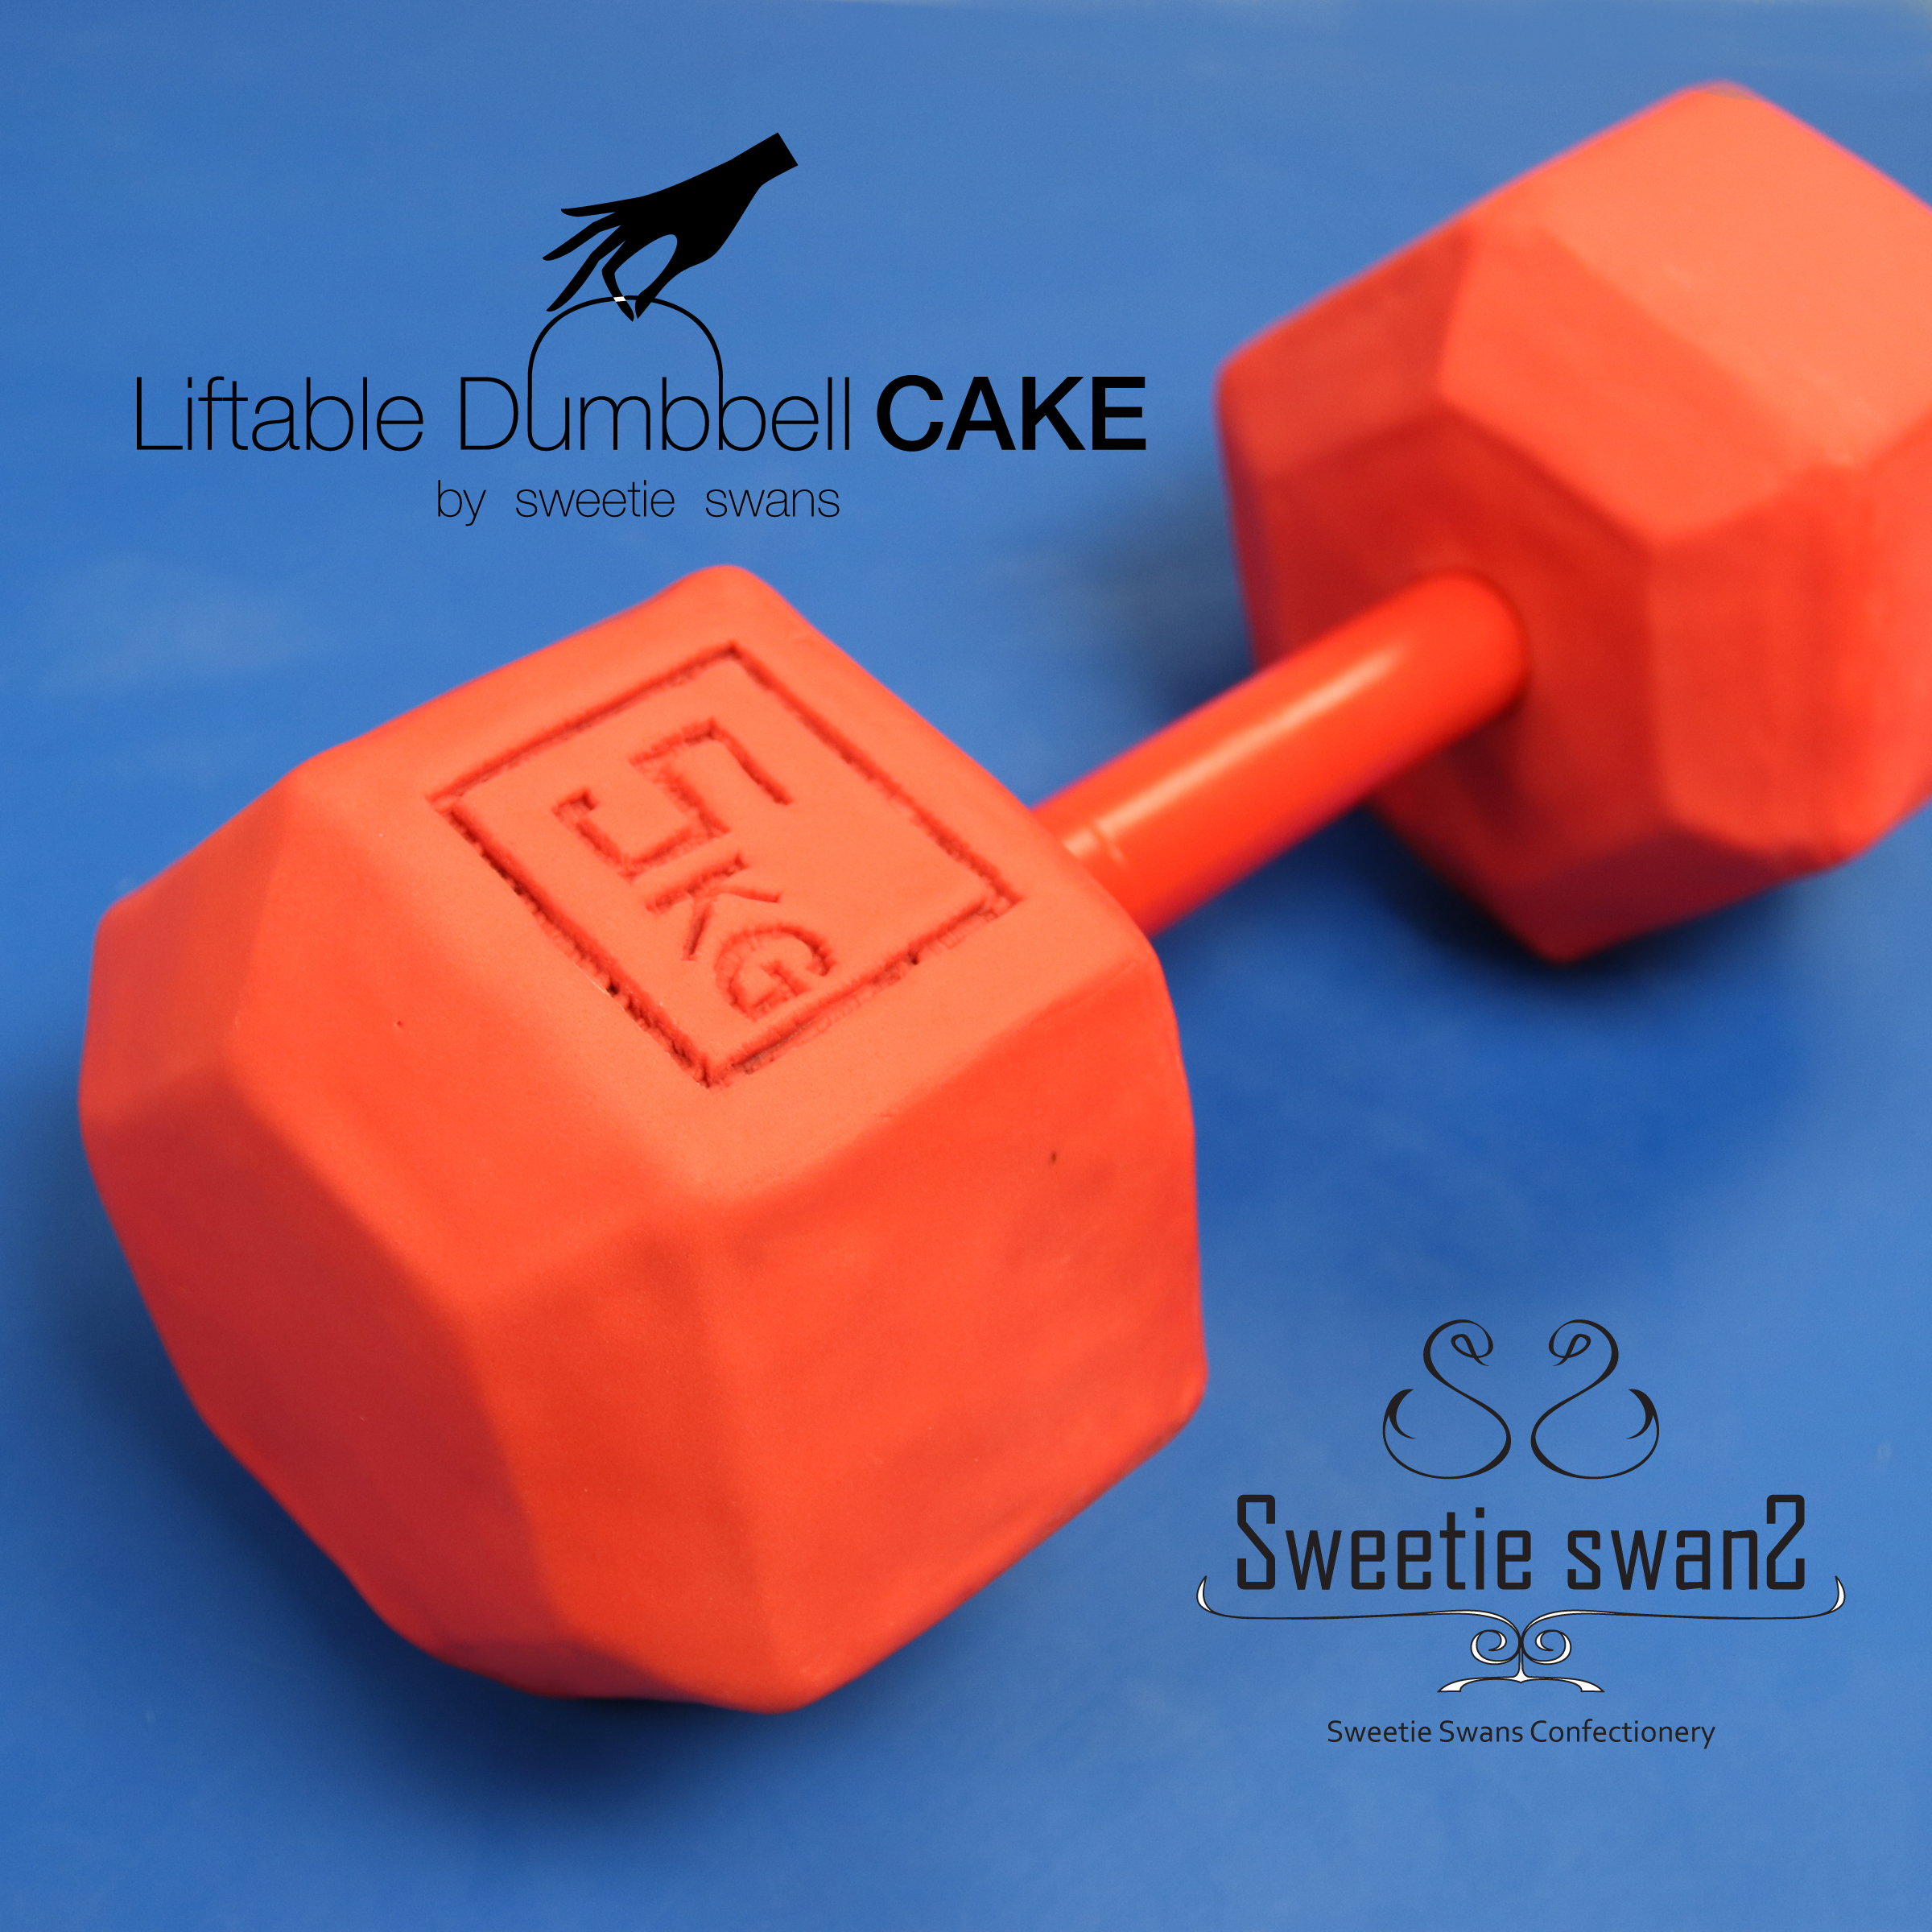 Liftable dumbbell cake-1